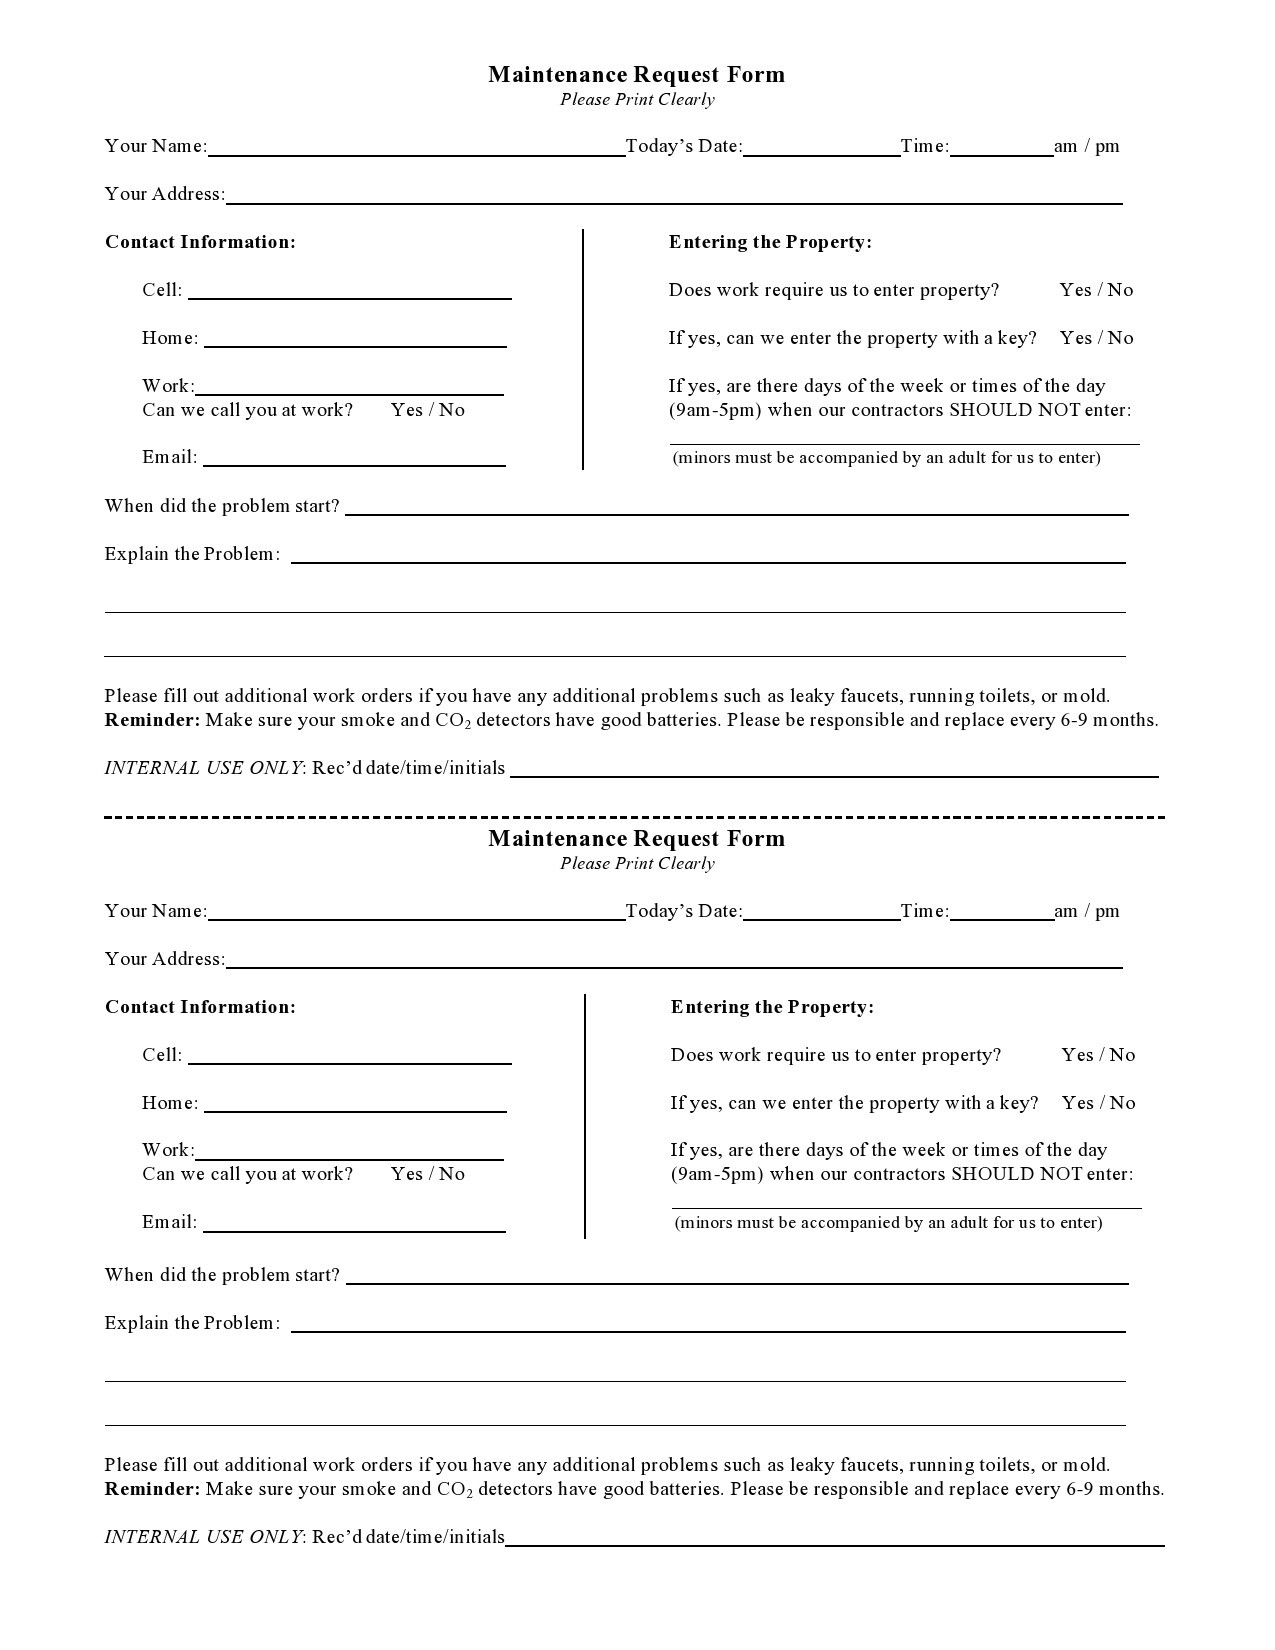 Free maintenance request form 17